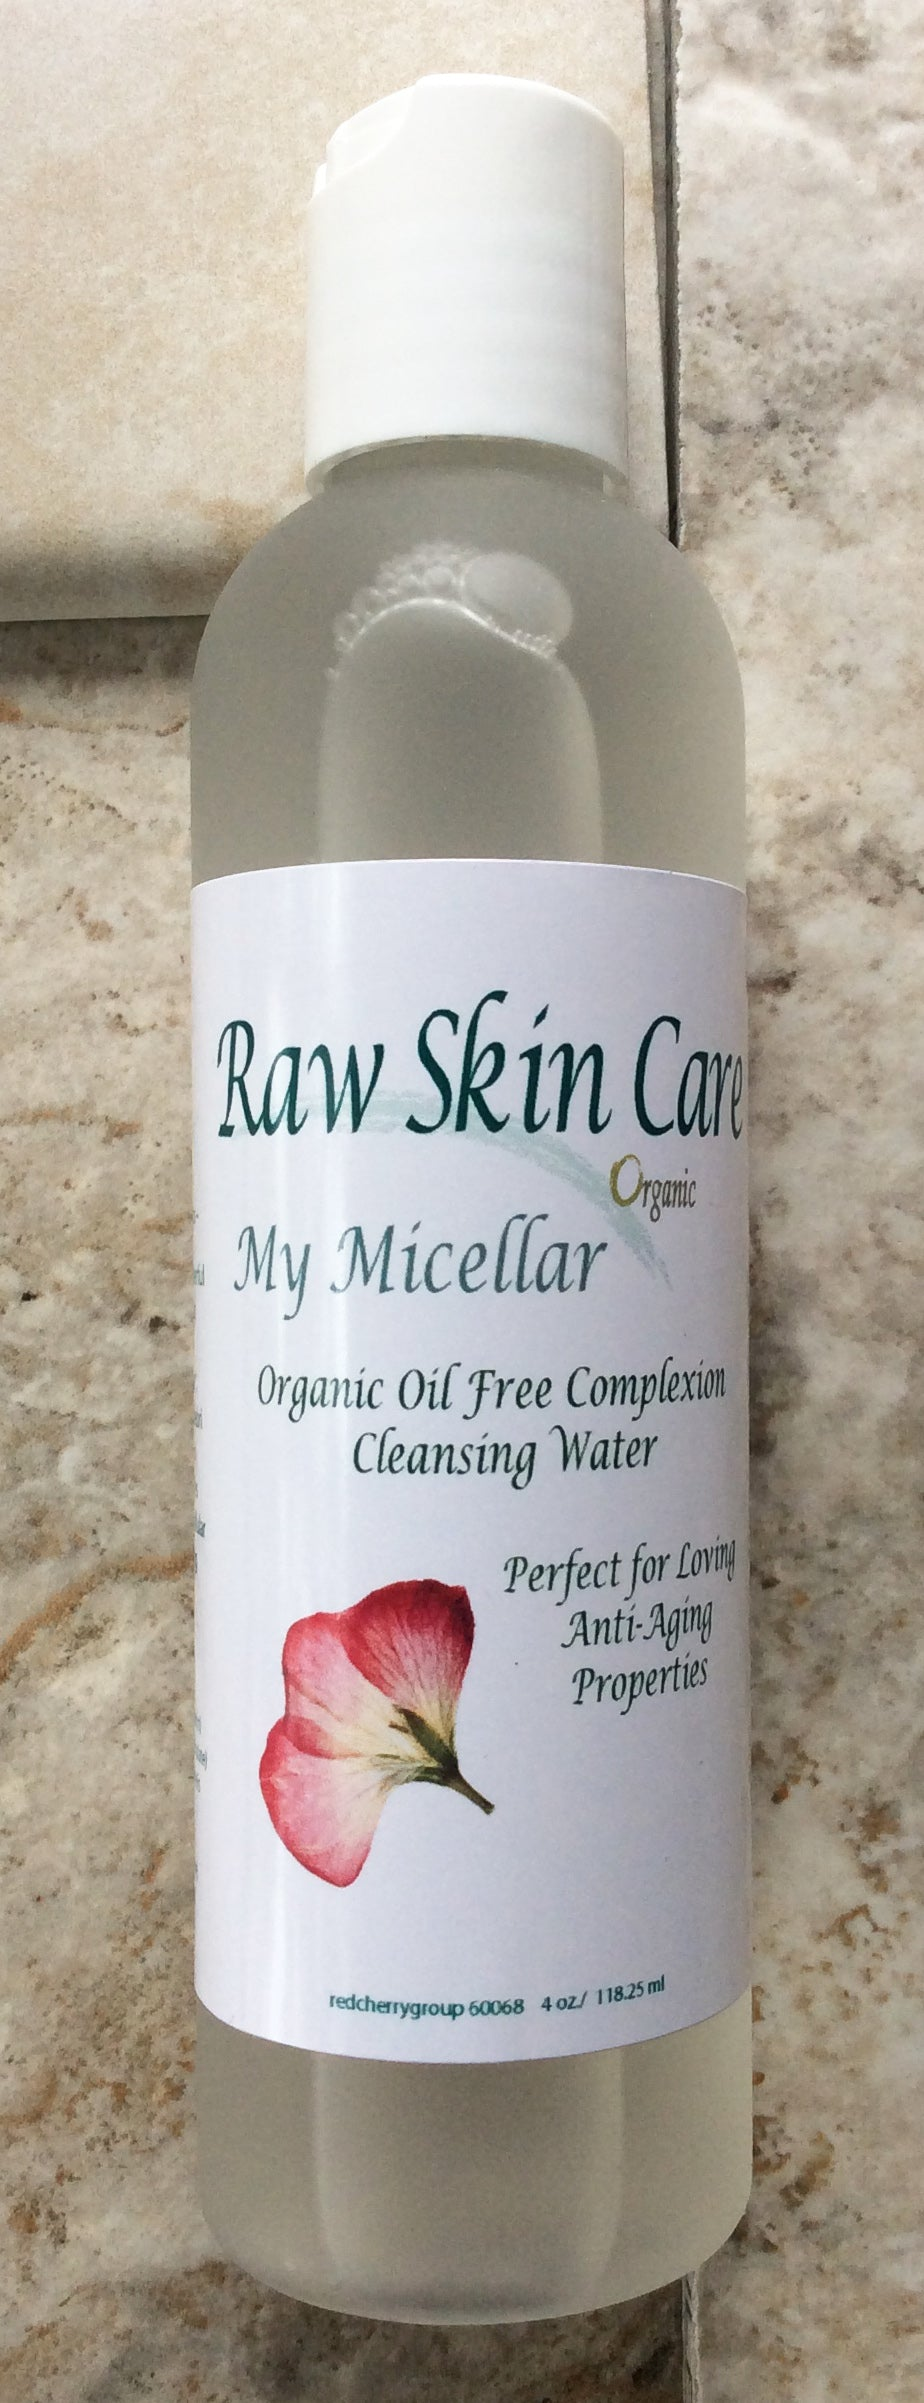 My Micellar Oil Free 4oz. Complexion Cleansing Waters with Anti-Aging Nutrients